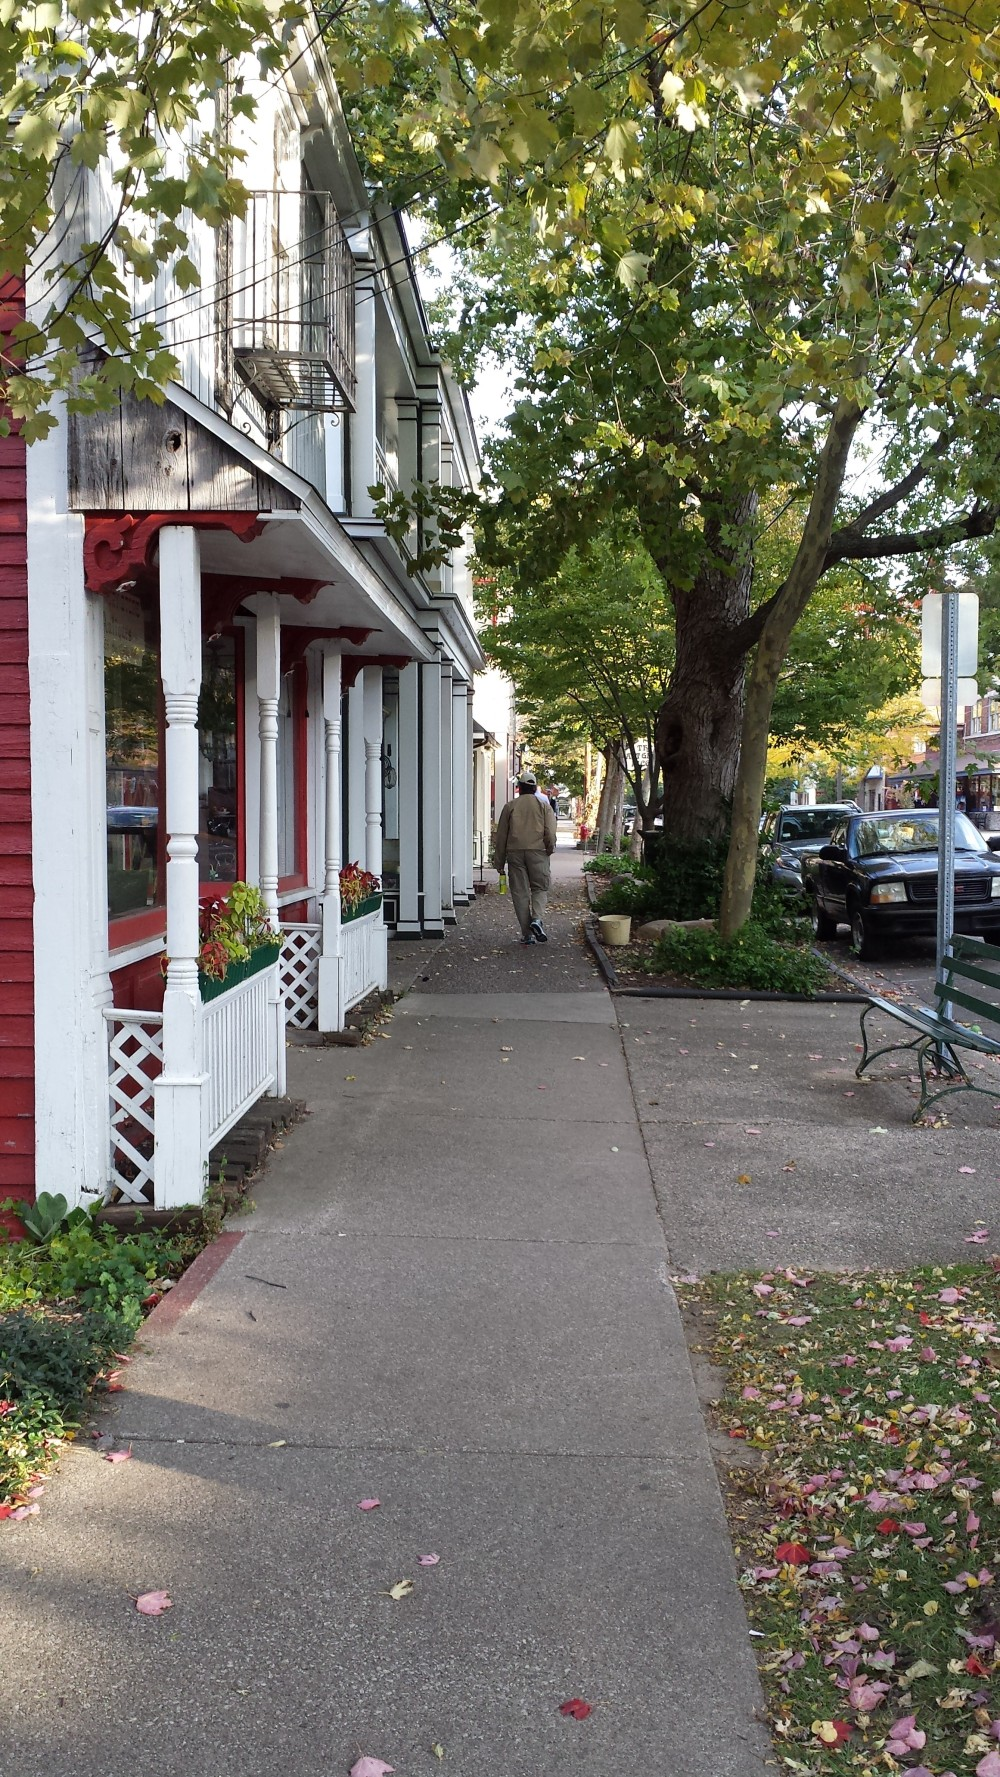 Main street (probably Butler St.) in Saugatuck